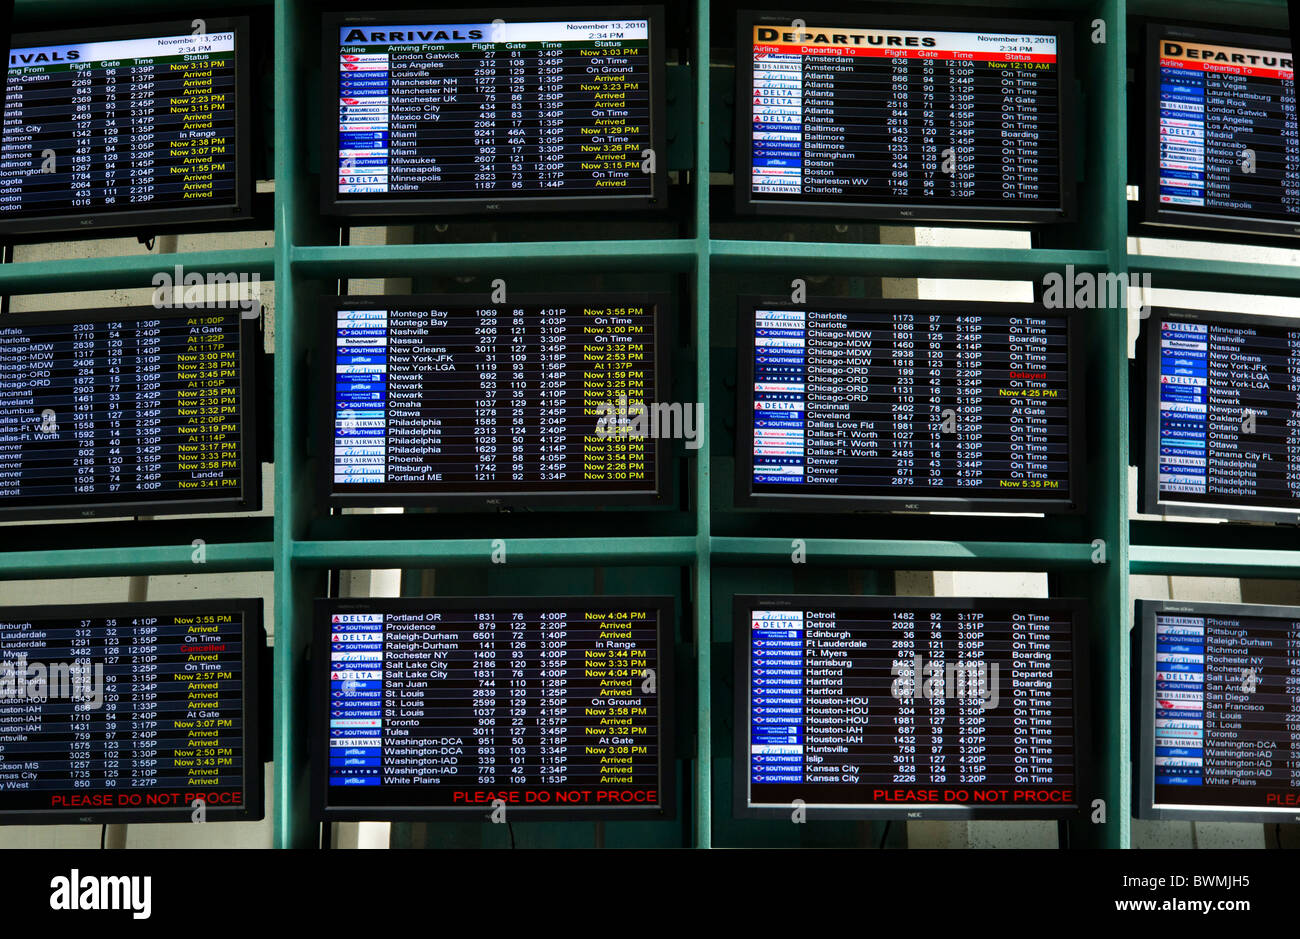 Flight Arrivals and Departures boards at Orlando International Airport, Florida, USA - Stock Image